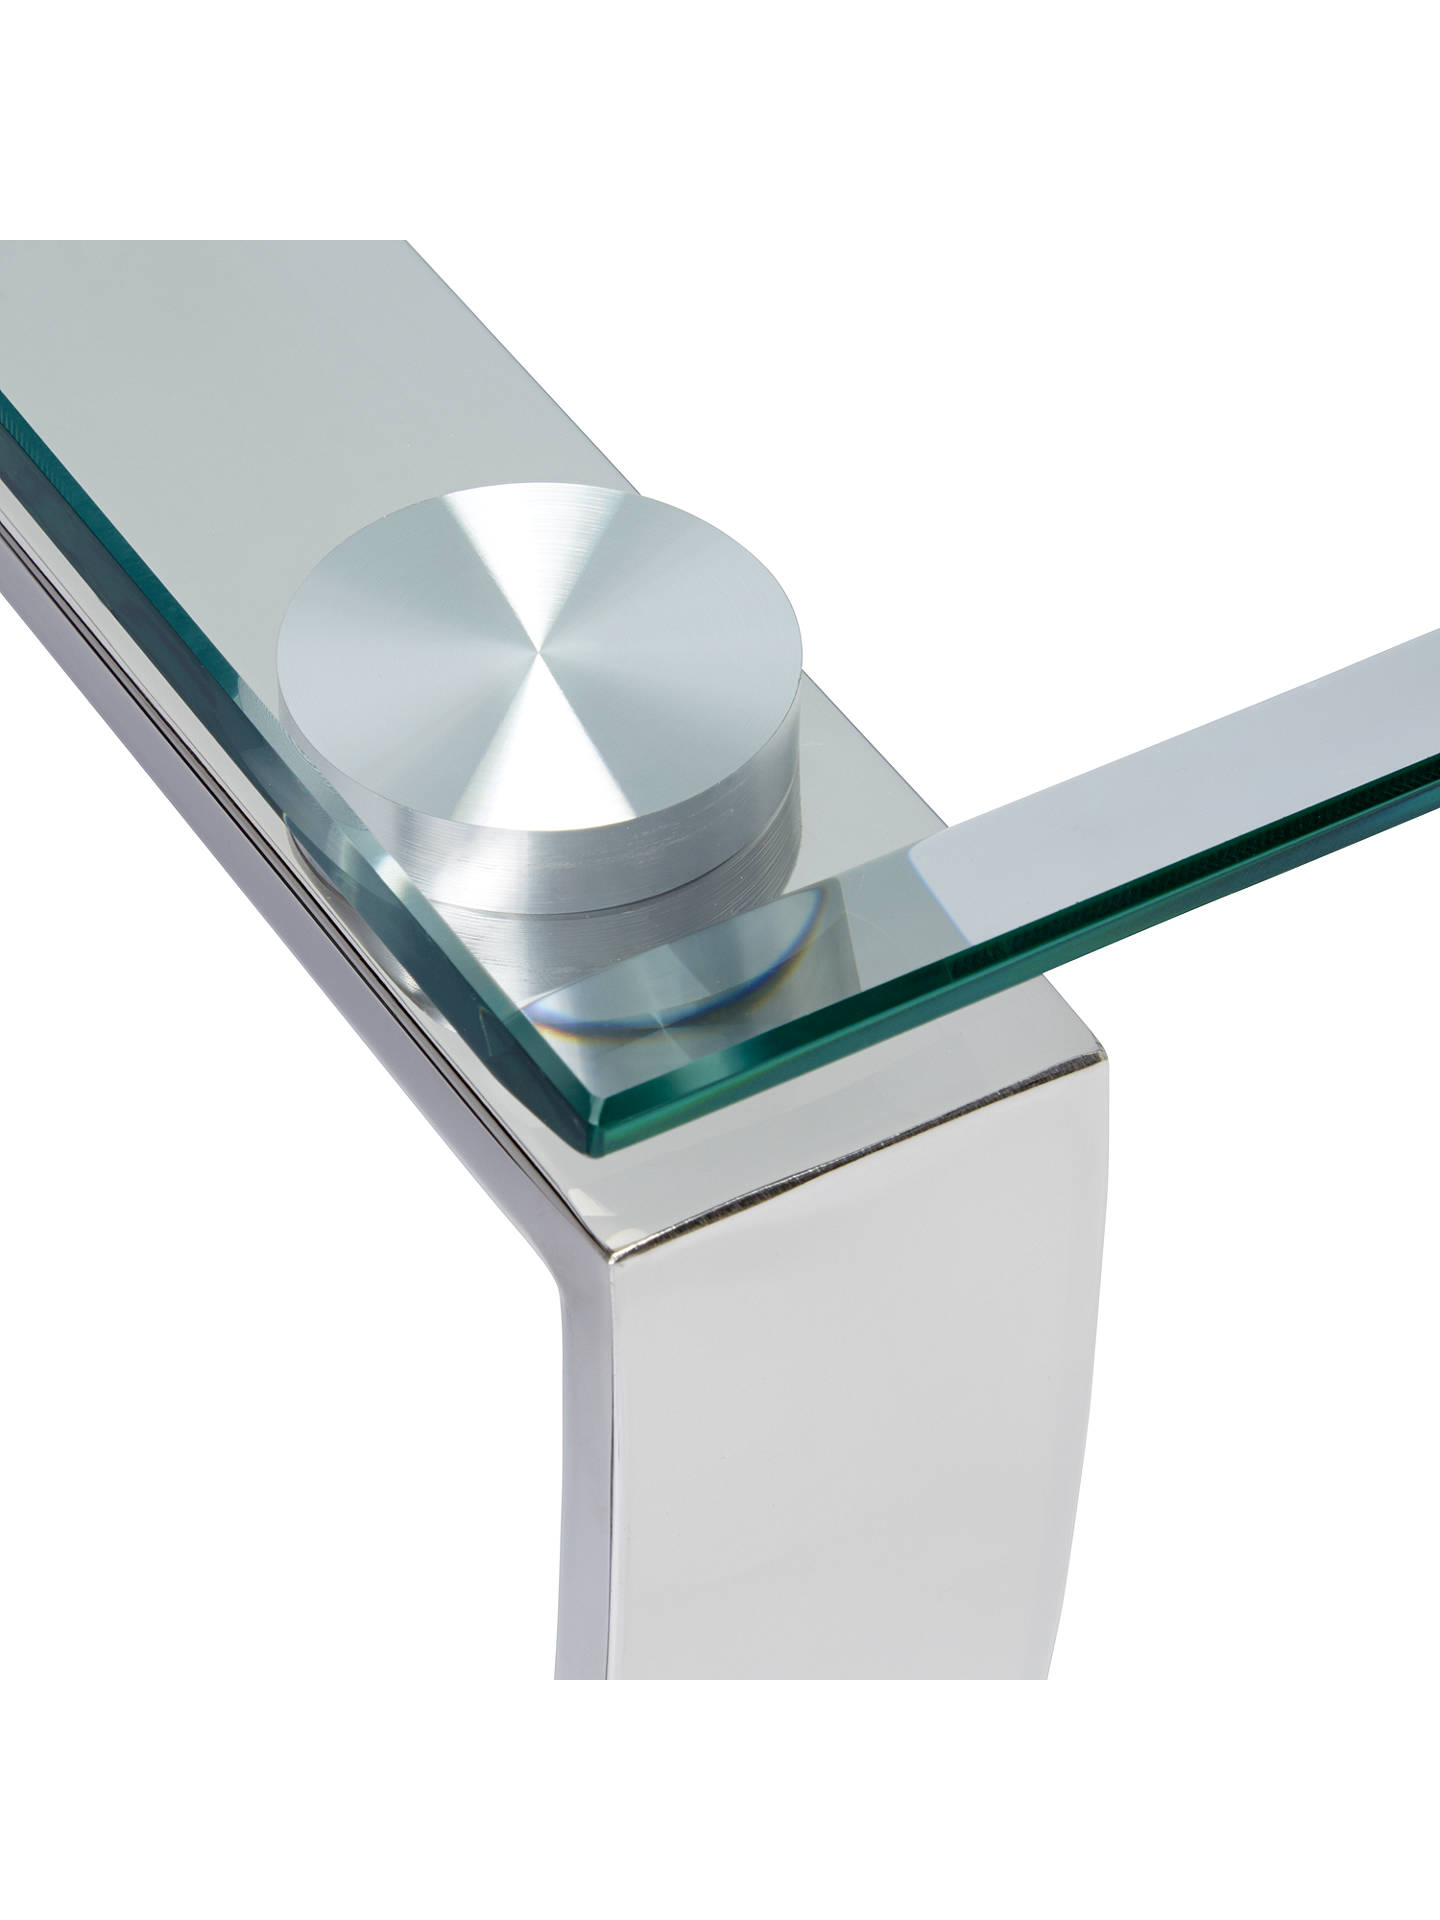 Buy John Lewis & Partners Vienna Nest of 2 Tables Online at johnlewis.com